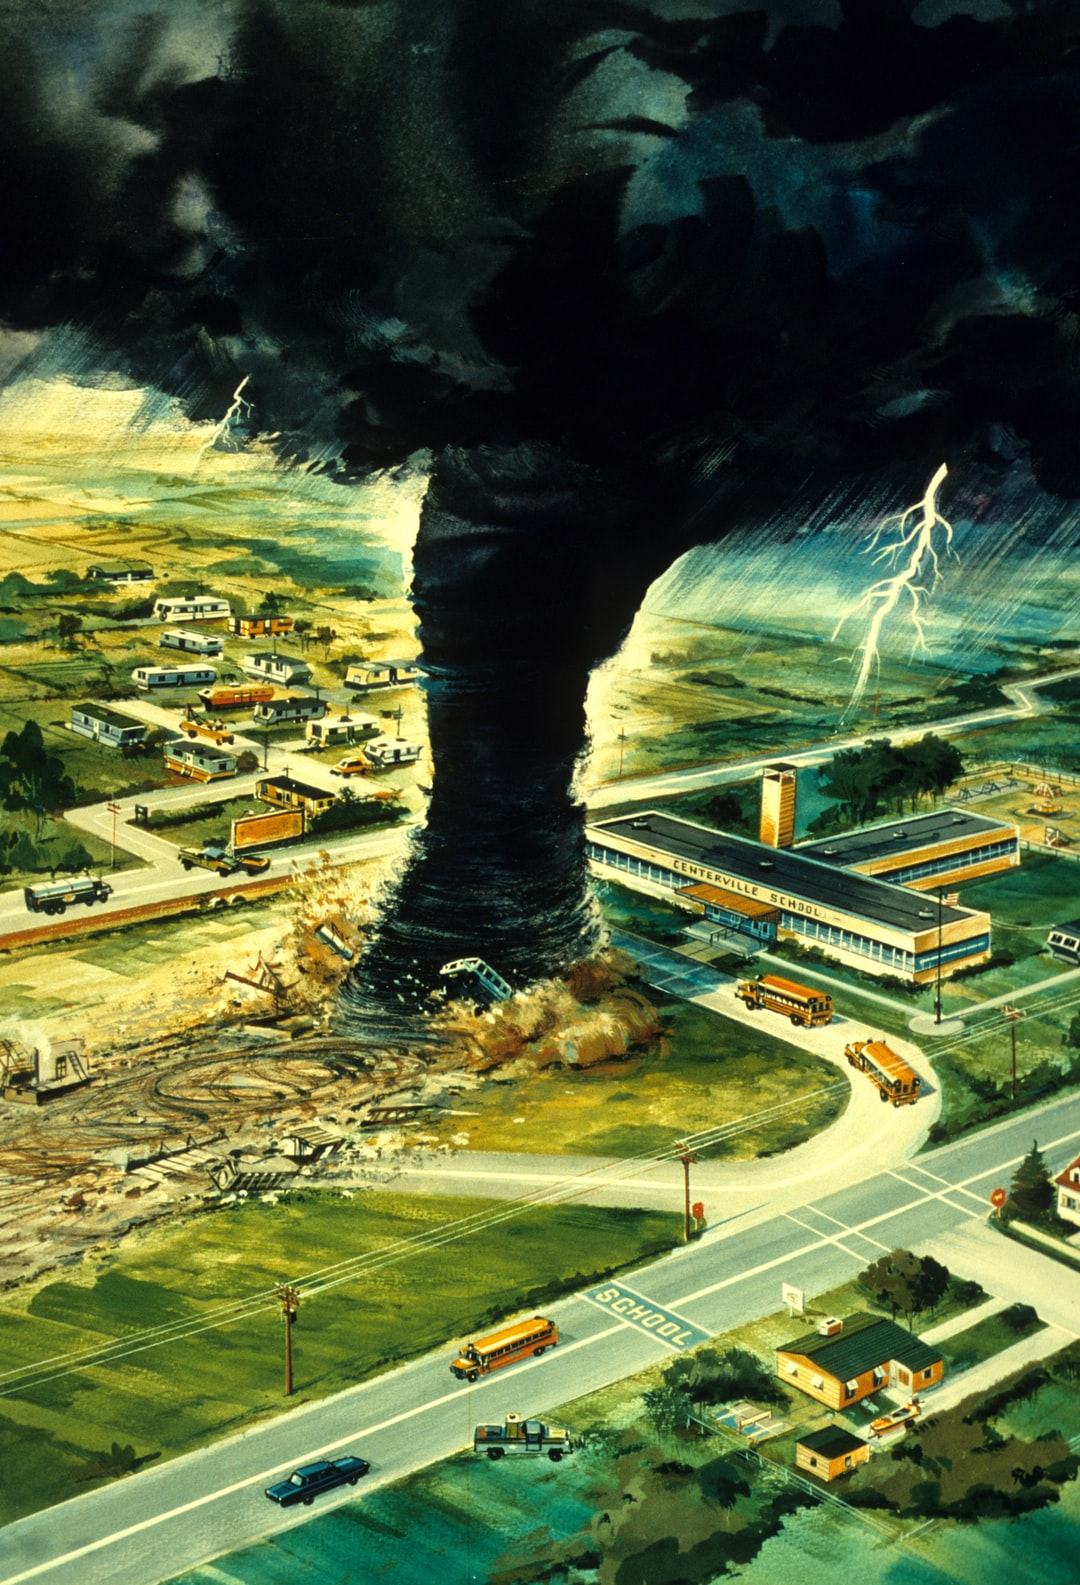 Artist's rendition of a tornado about to strike a school at the worst possible time while school buses are loading.